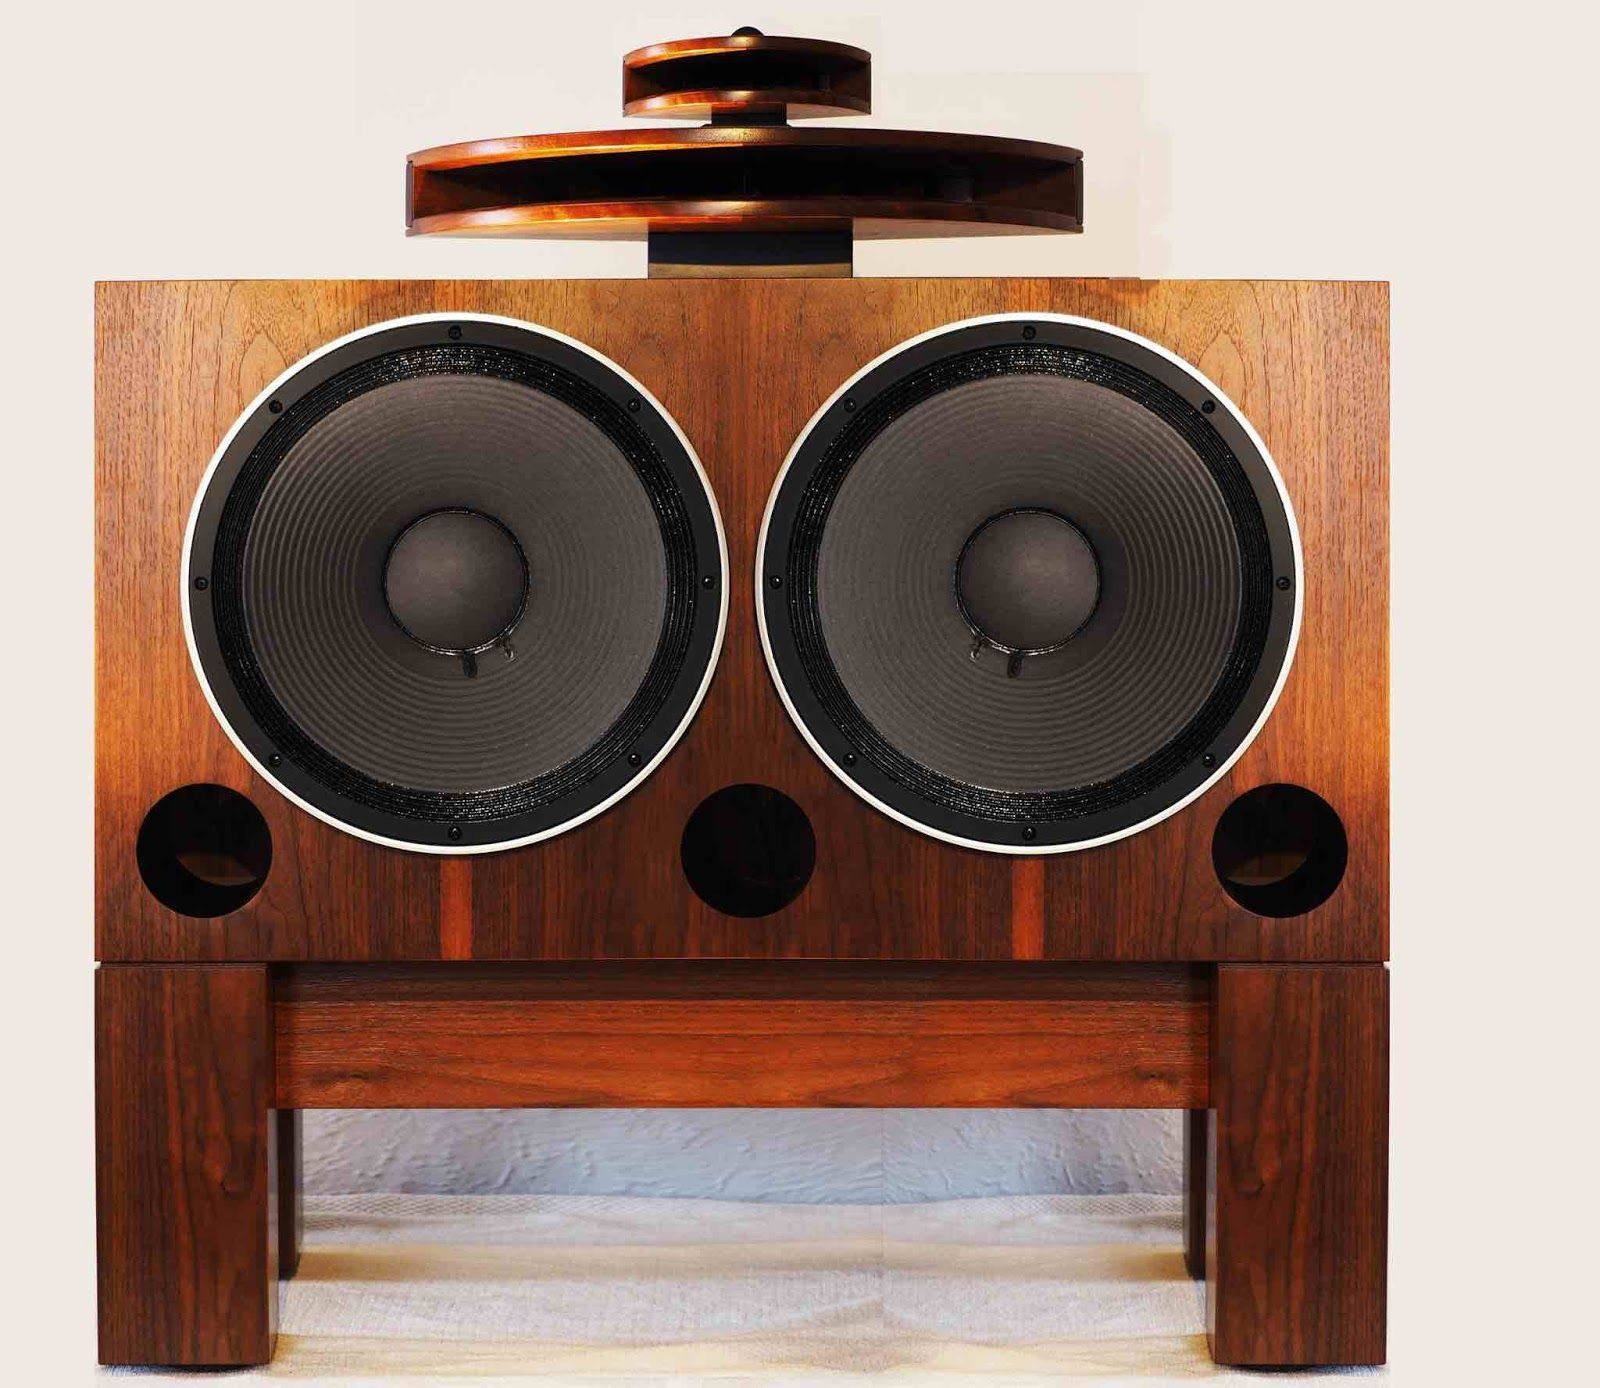 Mono and Stereo High End Audio Magazine Arteluthe Cadenza Twin speakers